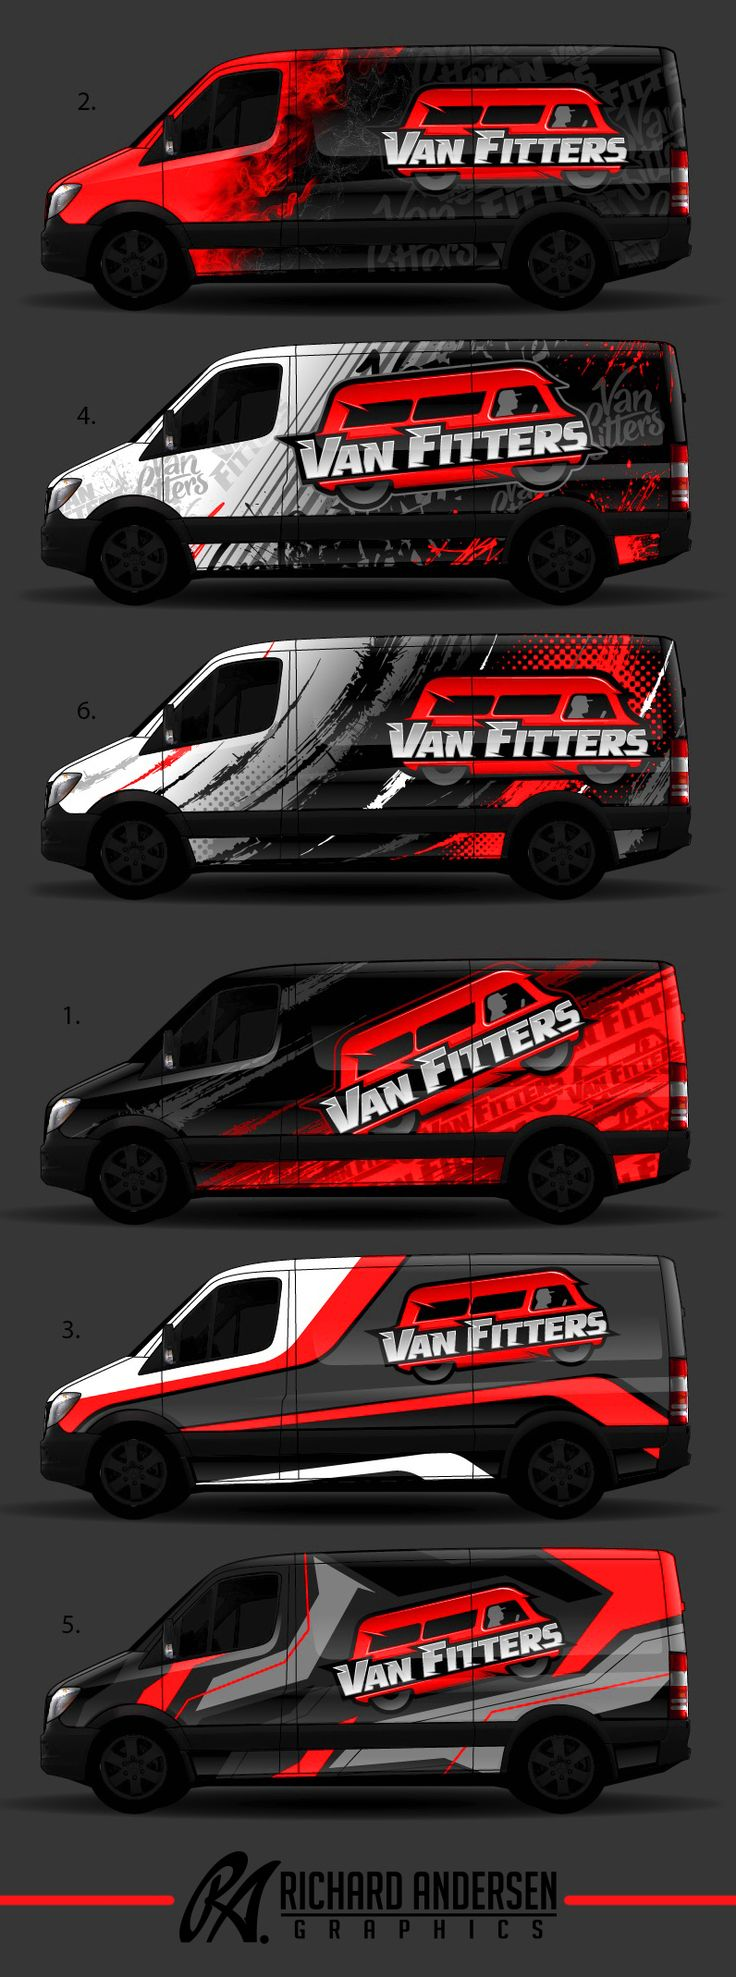 Wrap design by Richard Andersen https://ragraphics.carbonmade.com/                                                                                                                                                                                 More